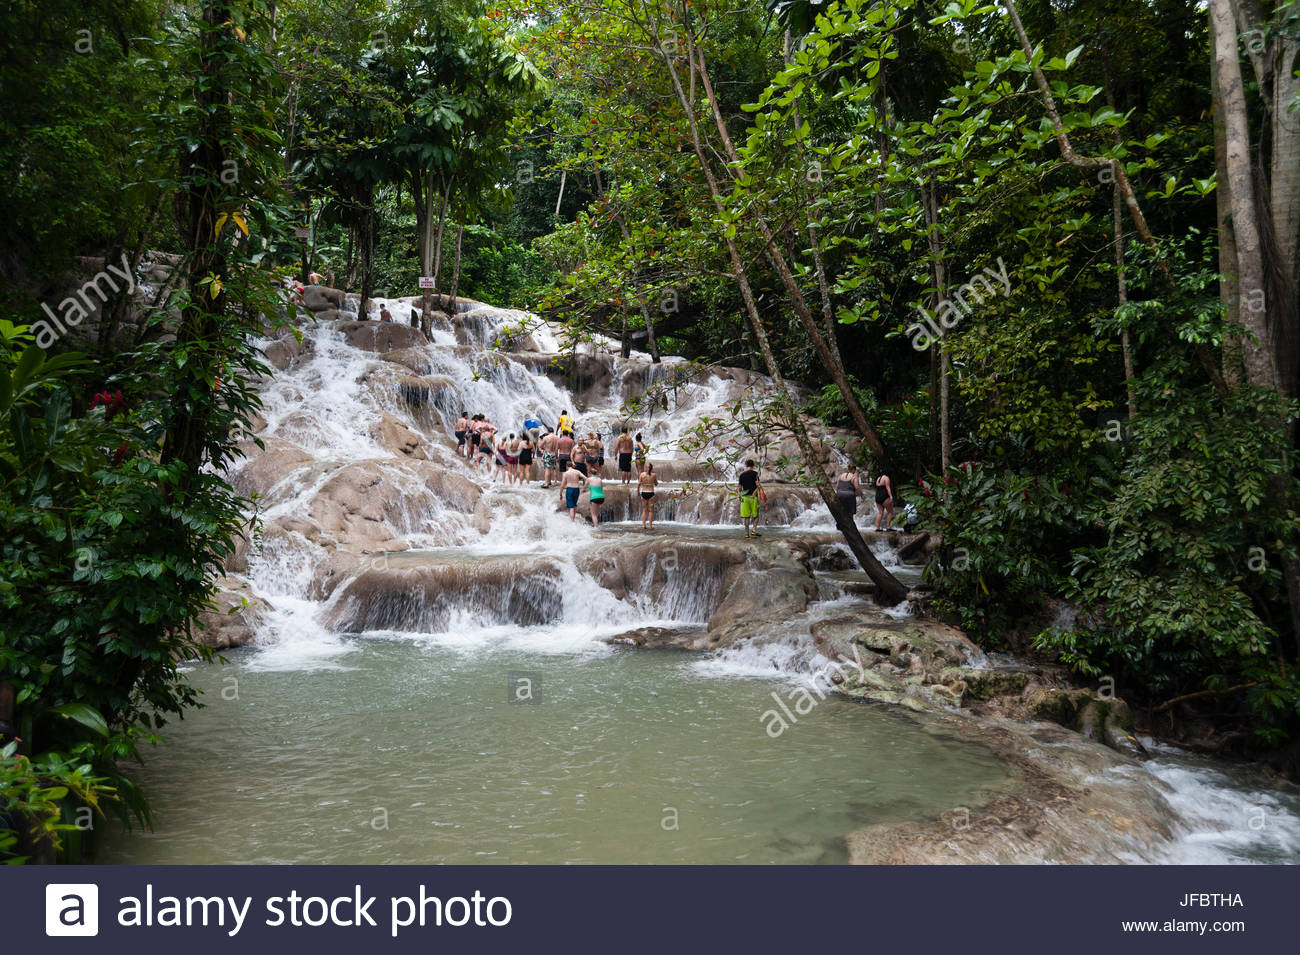 Tourists climbing the Dunn's River falls in a lush tropical landscape. - Stock Image